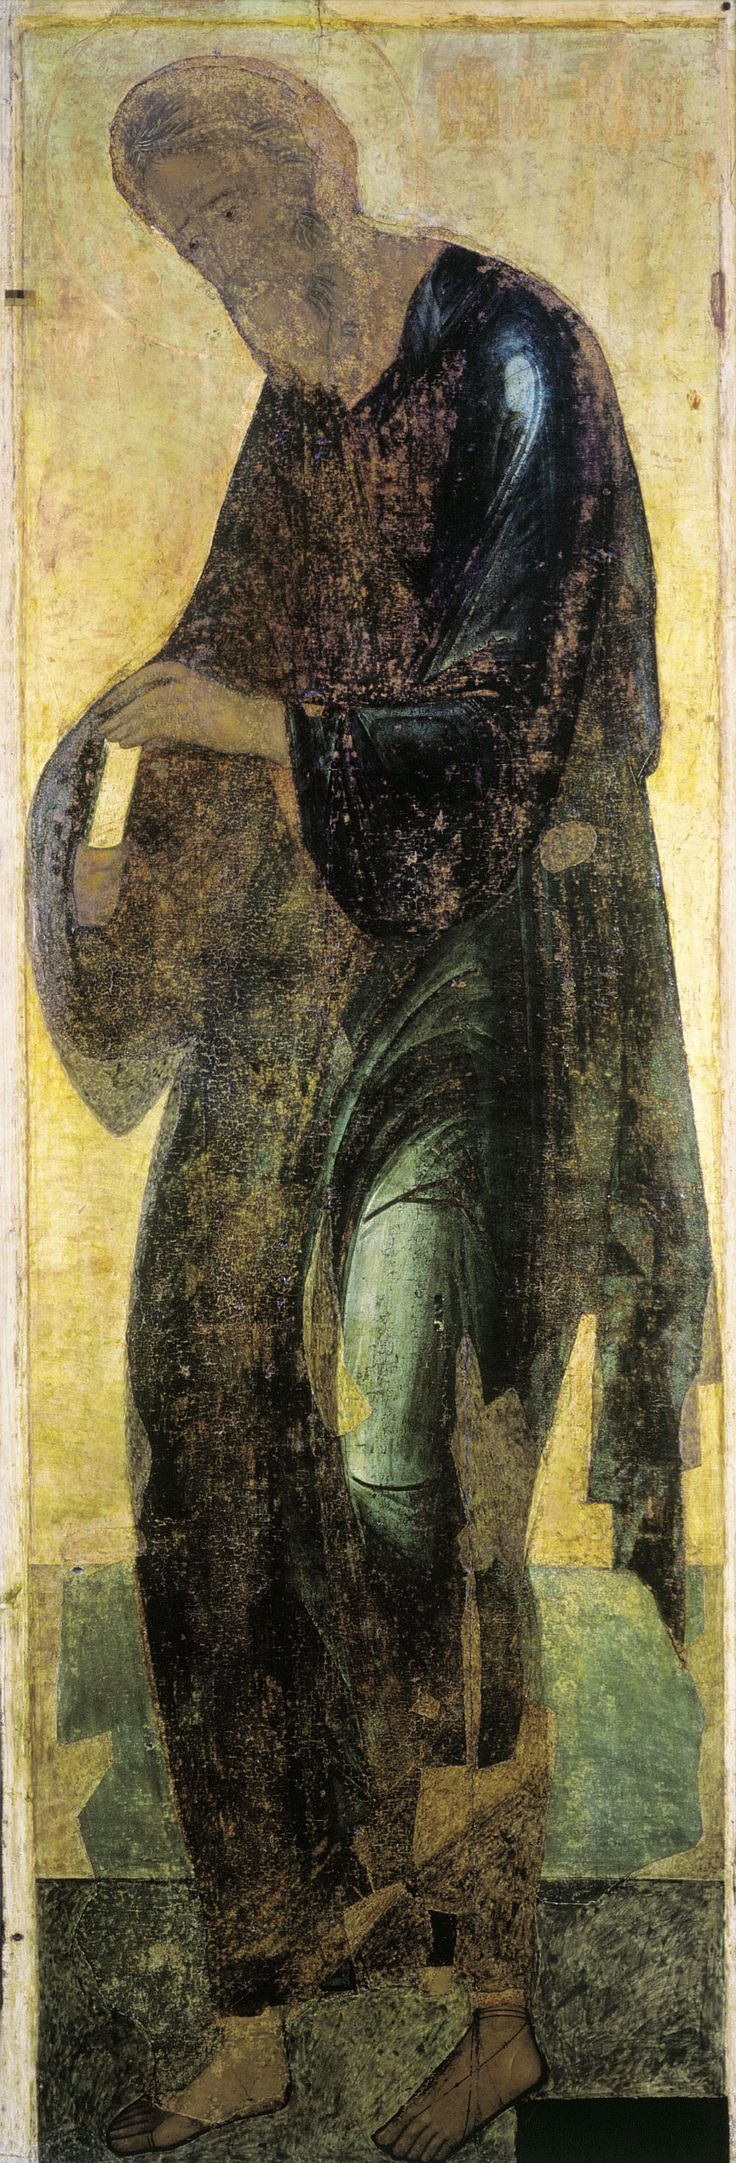 SFANTUL ANDREI , PATRONUL ROMANIEI ( DACIA ) , PRIMUL CHEMAT !   Andrei Rublev - St. Andrew the First-called, 1408 (Dormition Cathedral, Vladimir)